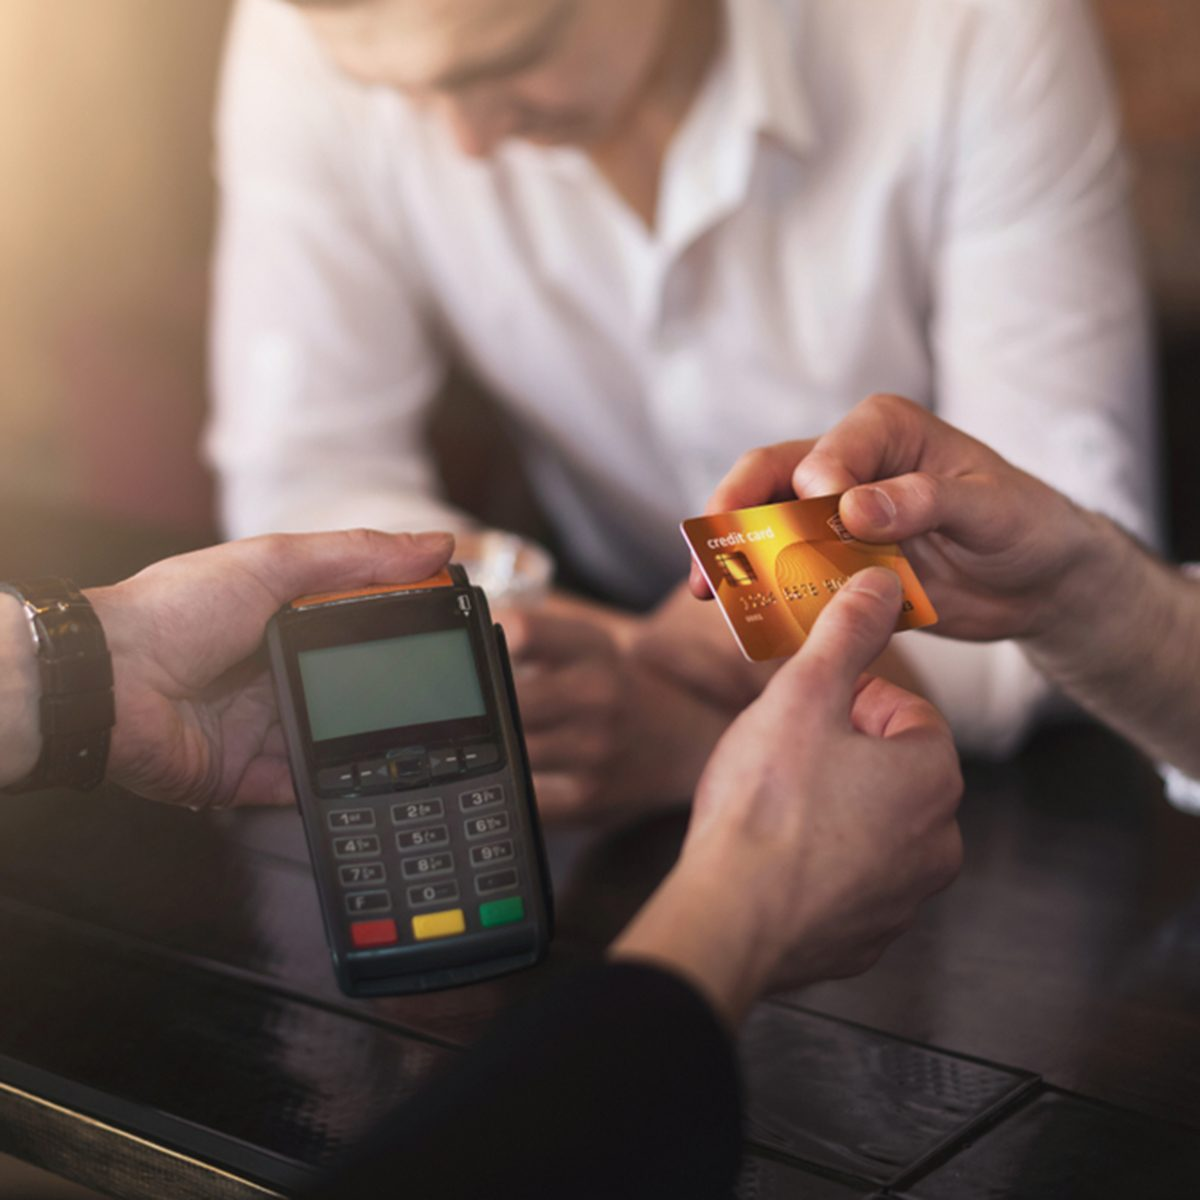 Drunk man paying via credit card, buying drinks in bar with bartender handing pos-terminal, copy space; Shutterstock ID 1129326635; Job (TFH, TOH, RD, BNB, CWM, CM): TOH